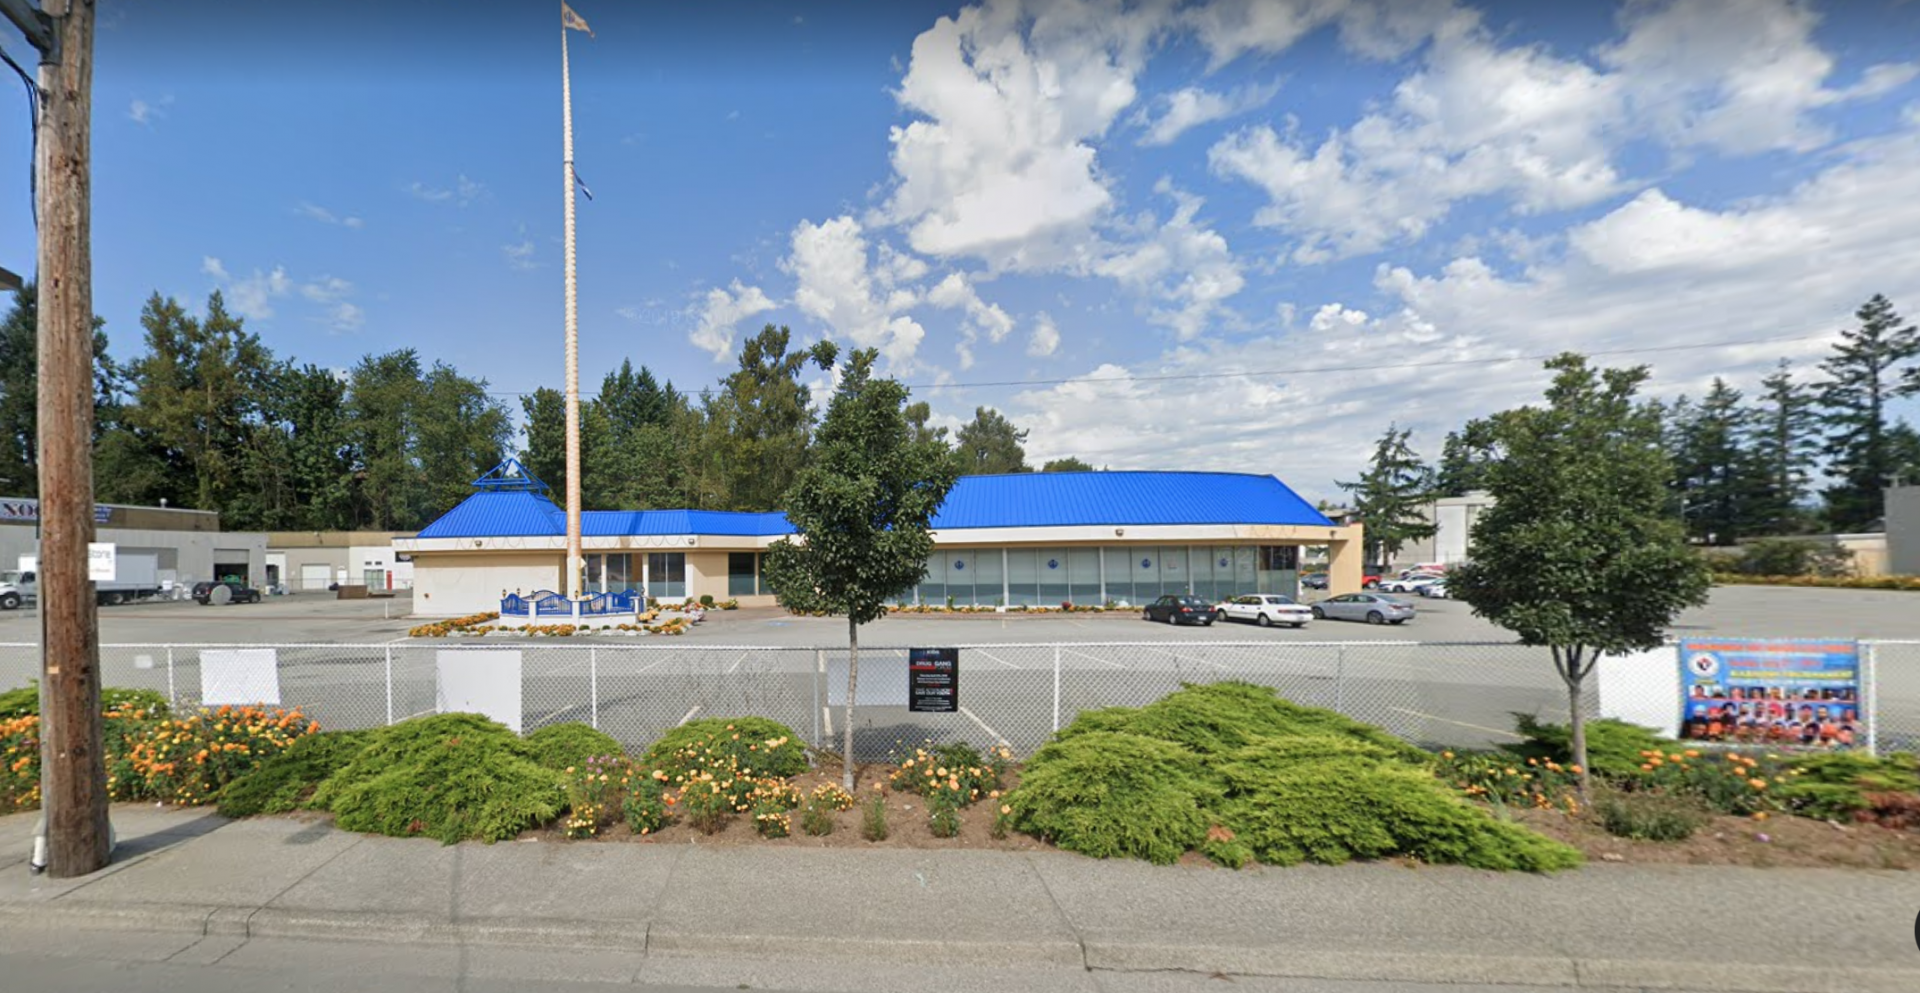 COVID-19 exposure alert issued for Fraser Valley Sikh temple